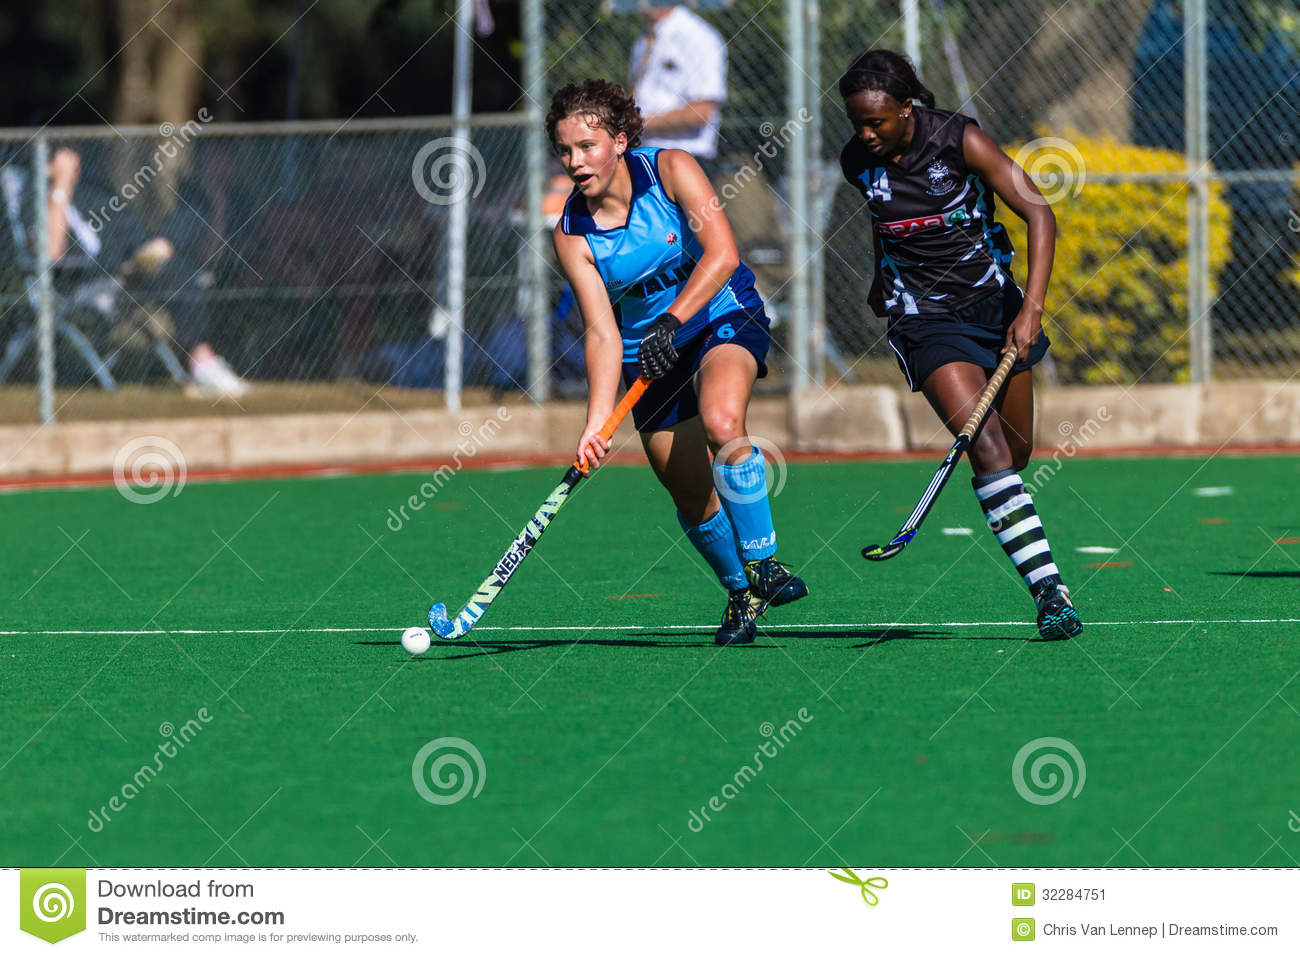 Hockey girls images 13